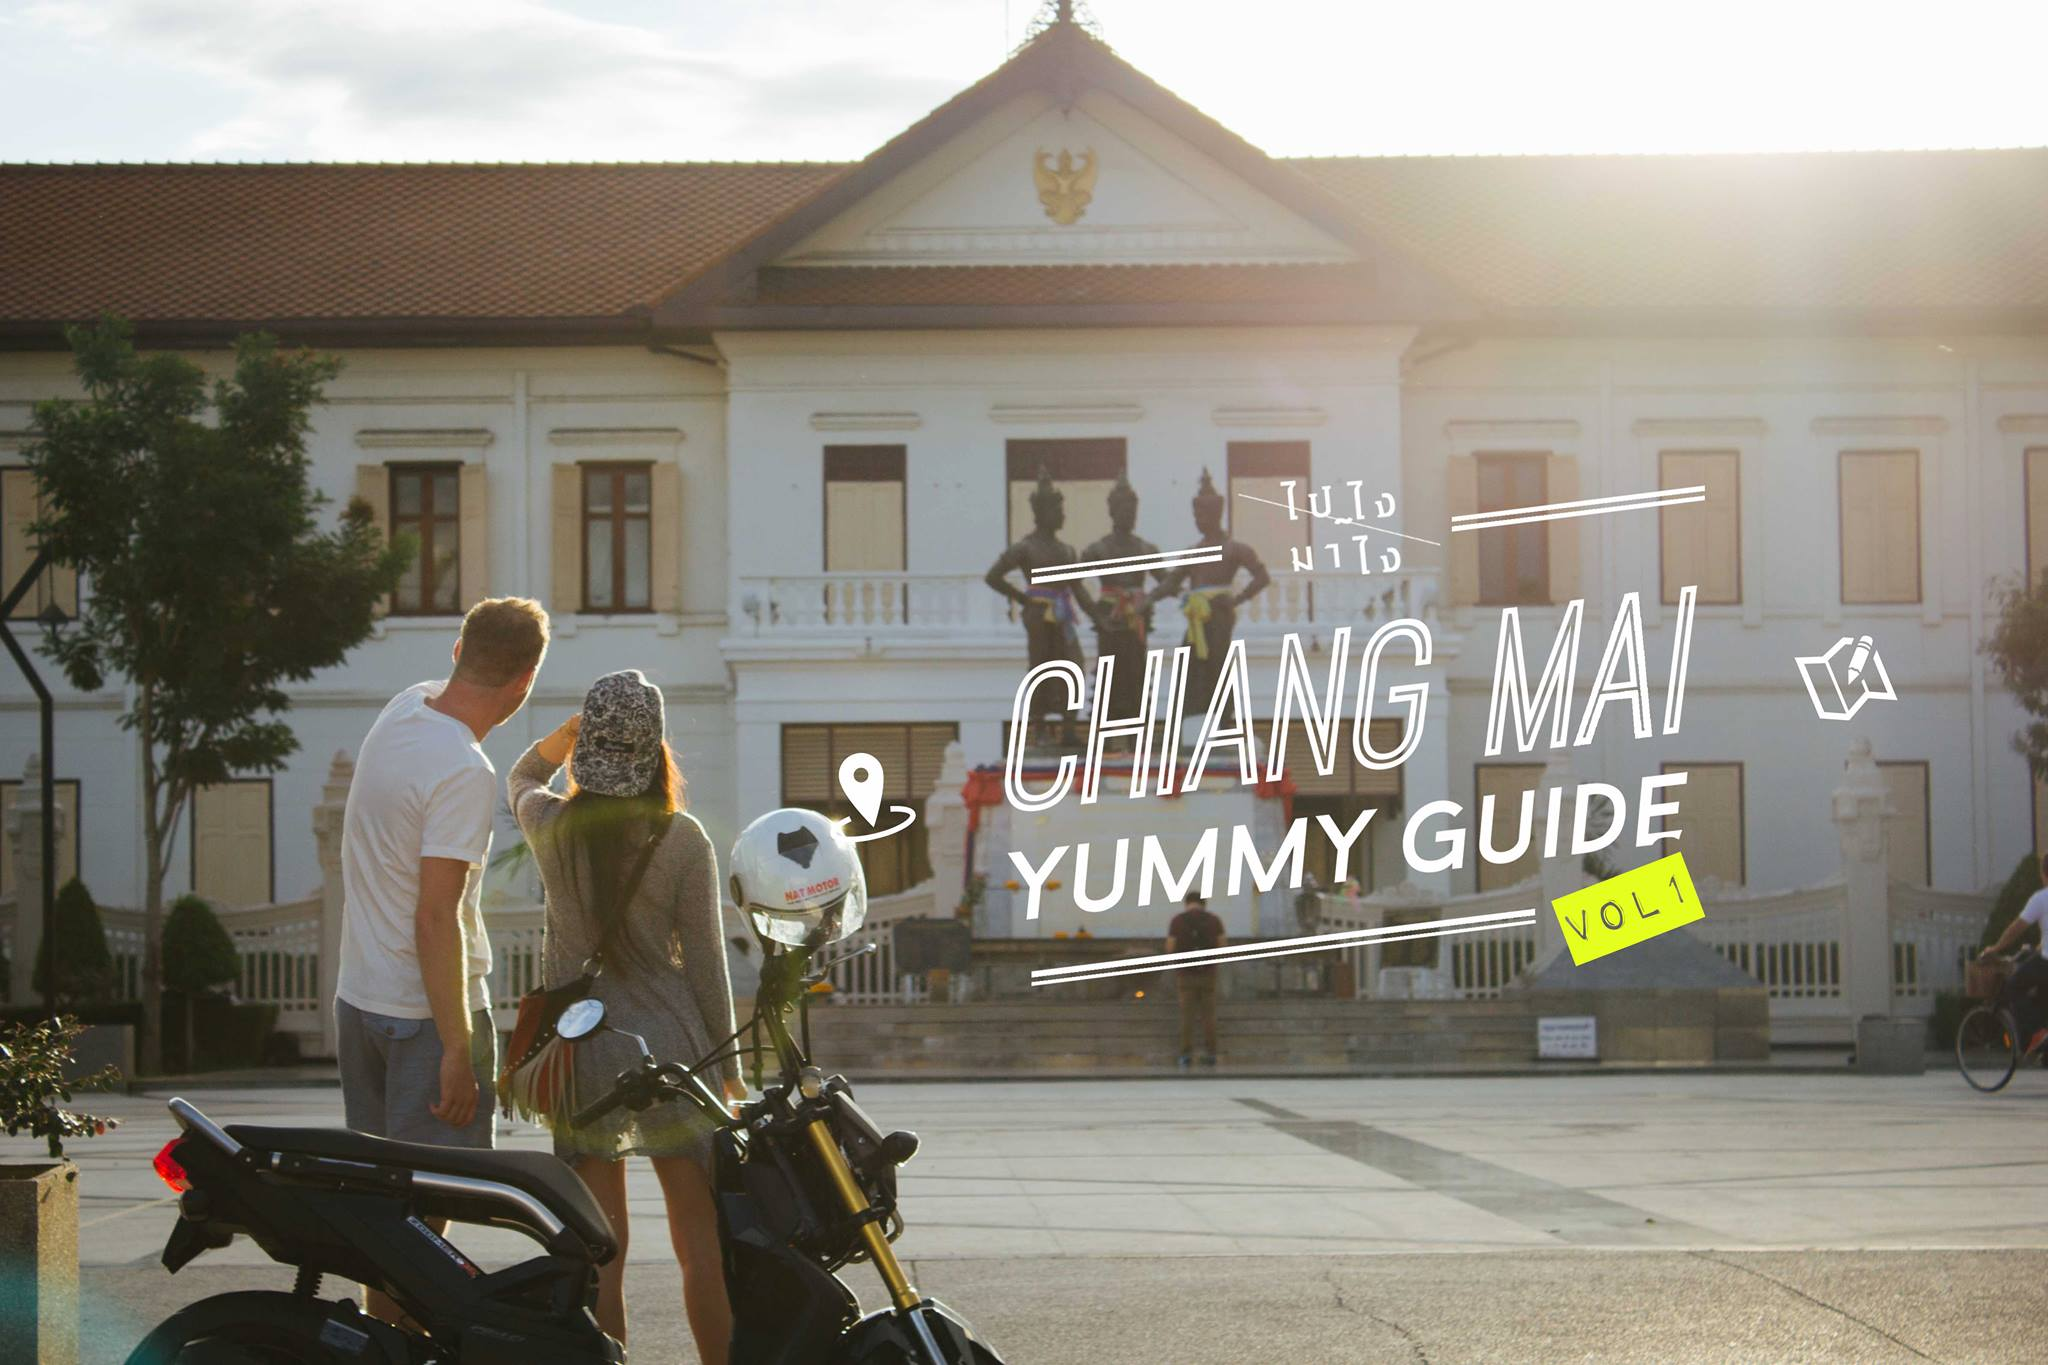 CHIANG MAI ,YUMMY GUIDE Vol.1